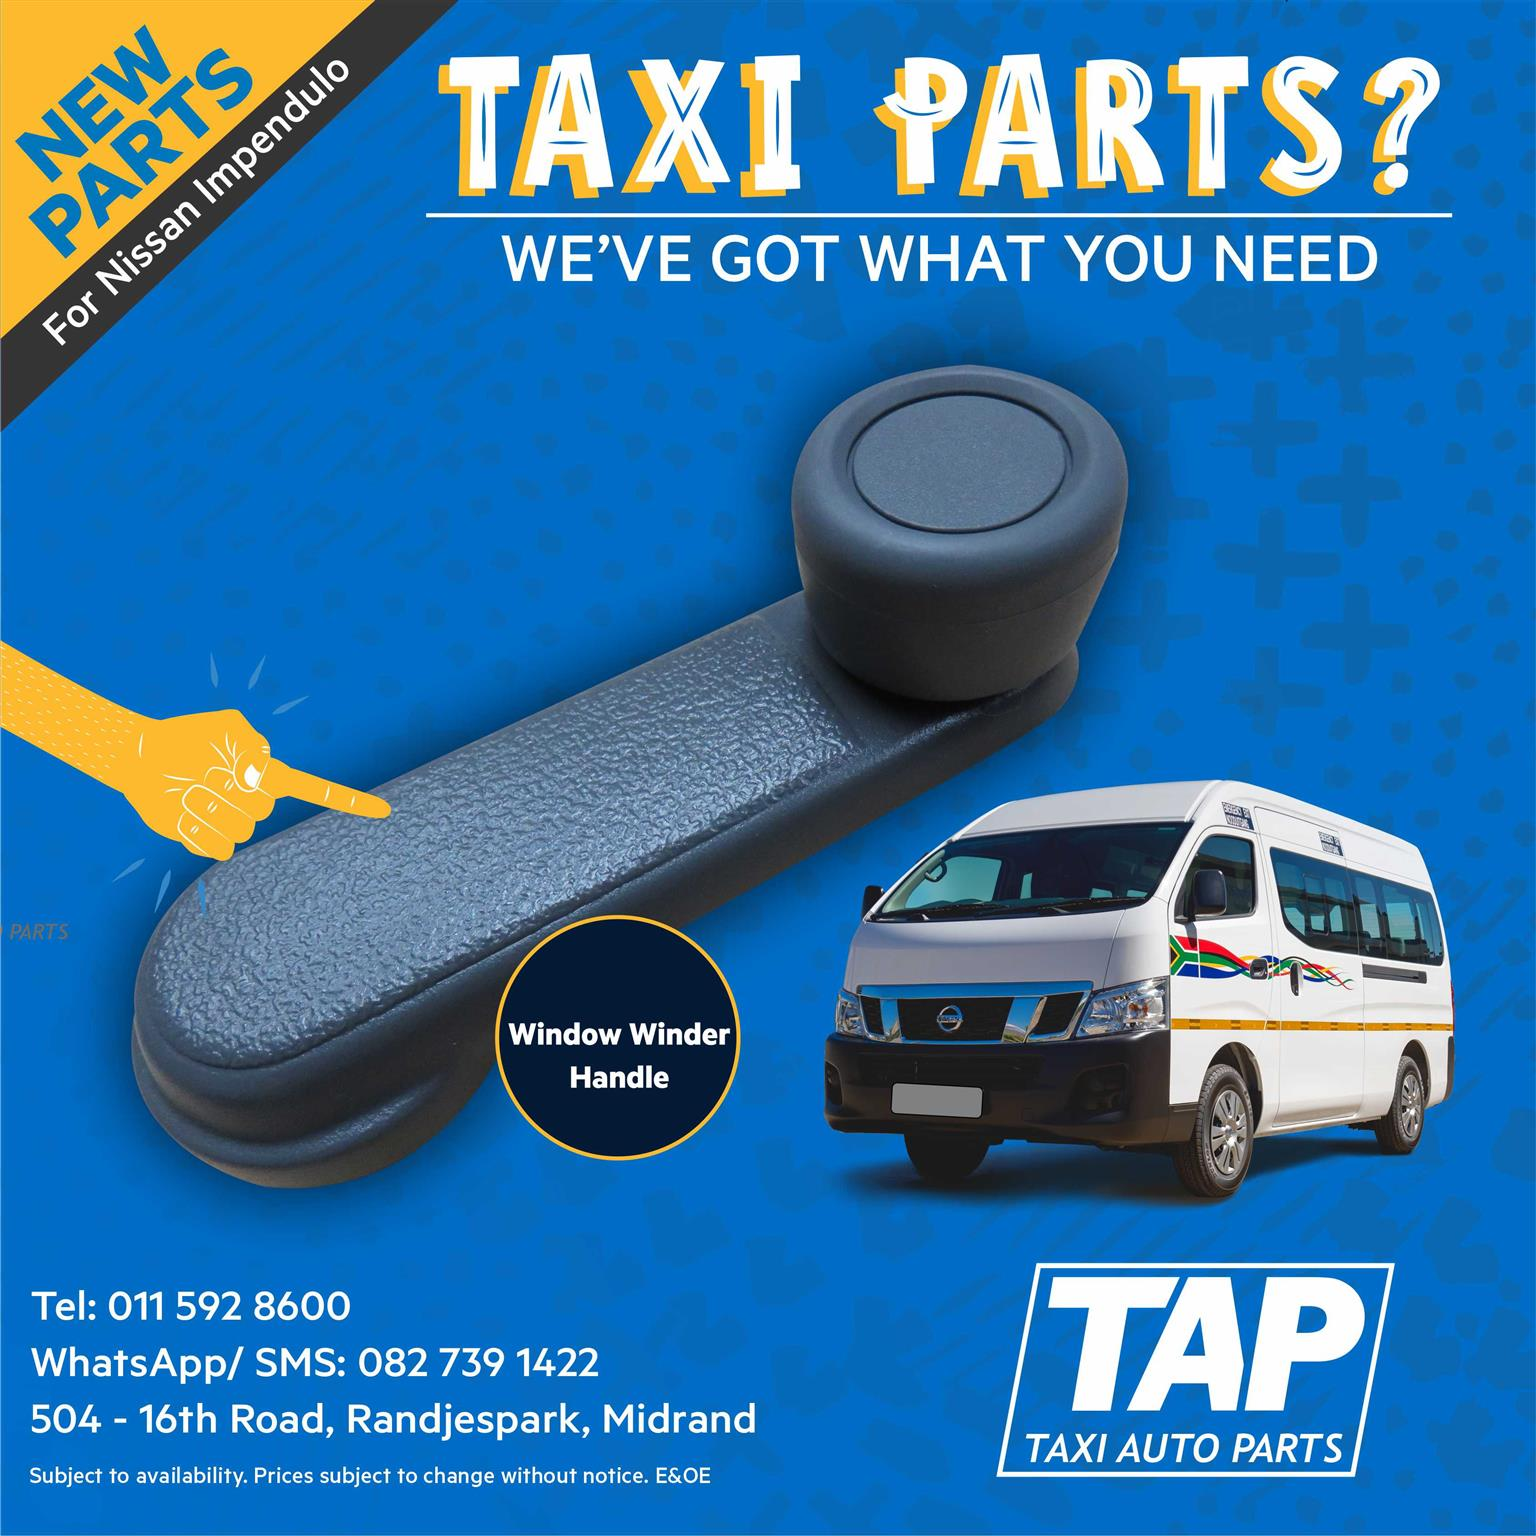 Window Winder Handle - NEW Parts for Nissan Impendulo -Taxi Auto Parts - TAP